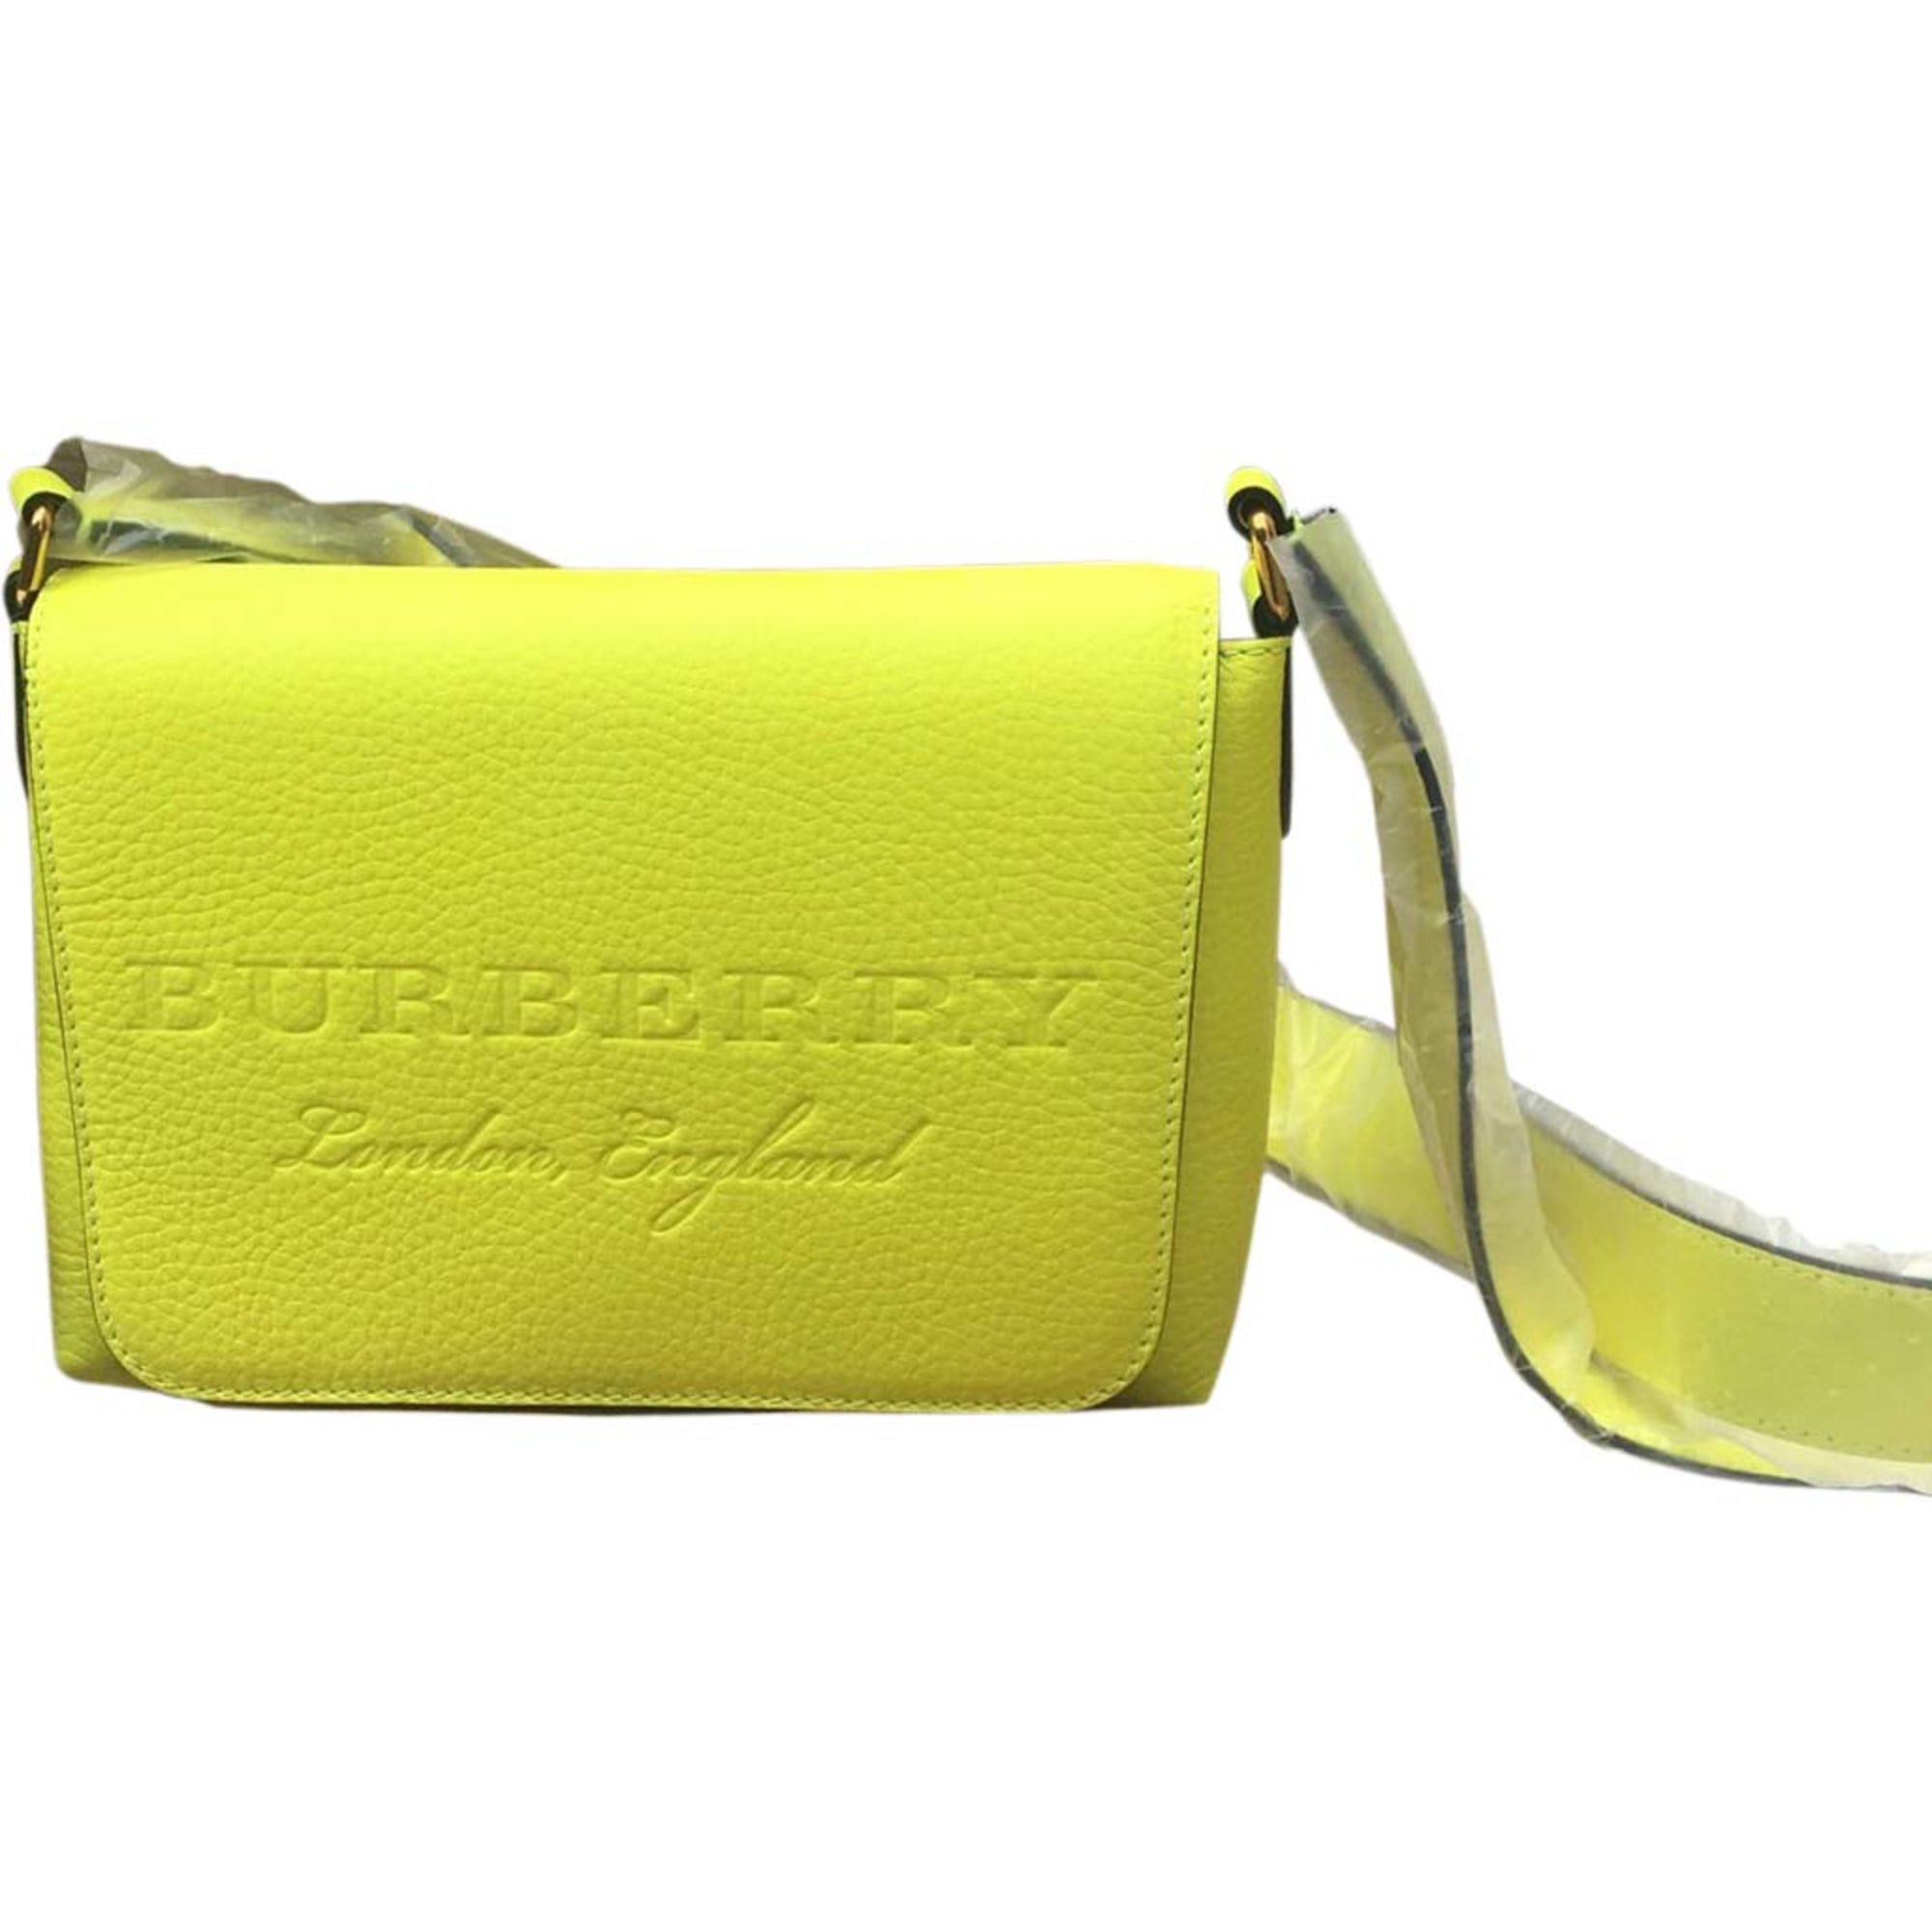 Leather Shoulder Bag BURBERRY Yellow